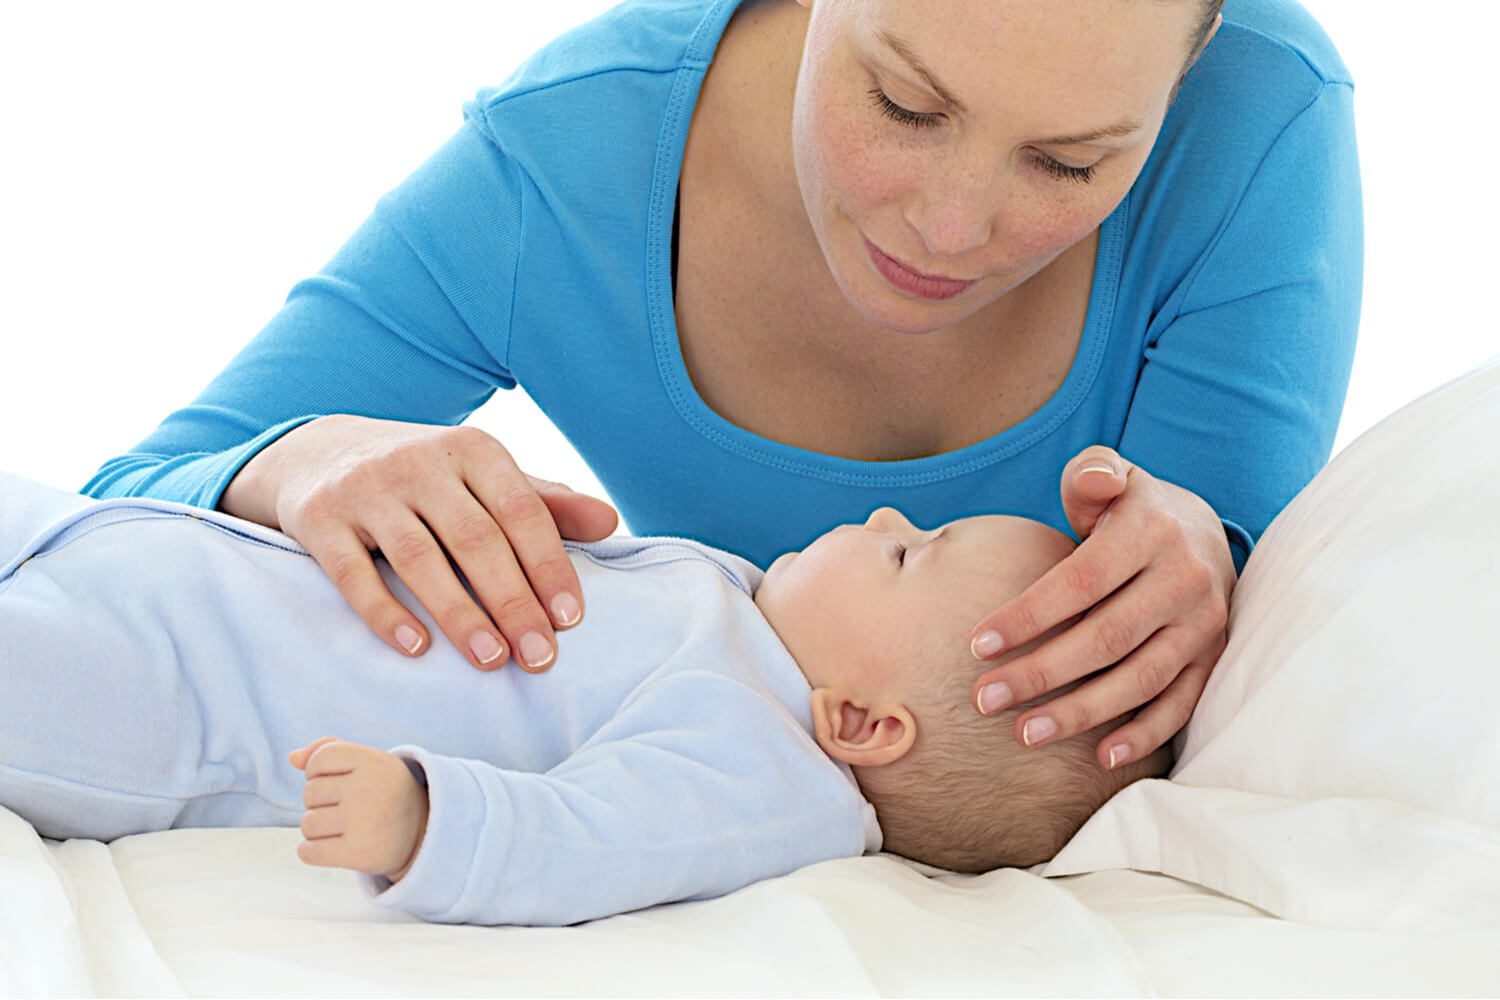 mom taking care of sick baby